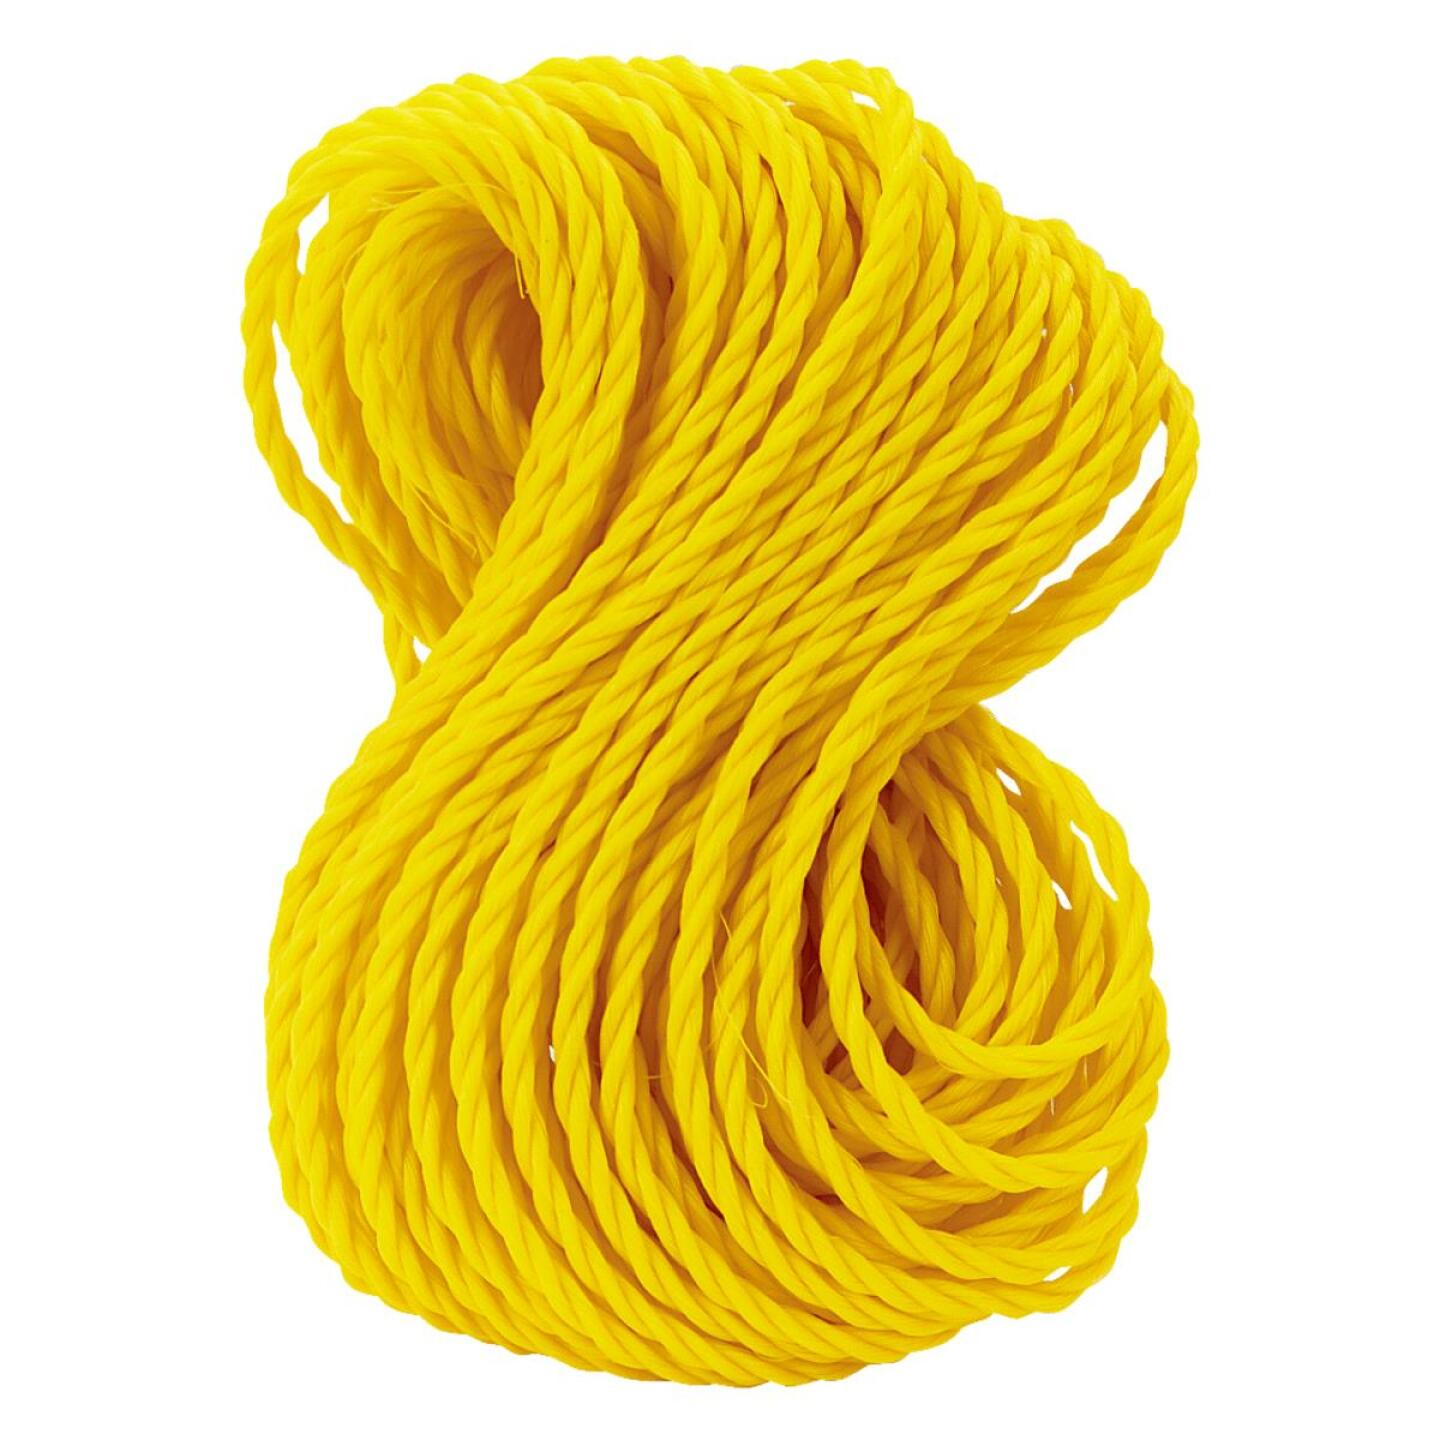 Do it 1/4 In. x 100 Ft. Yellow Twisted Polypropylene Packaged Rope Image 2